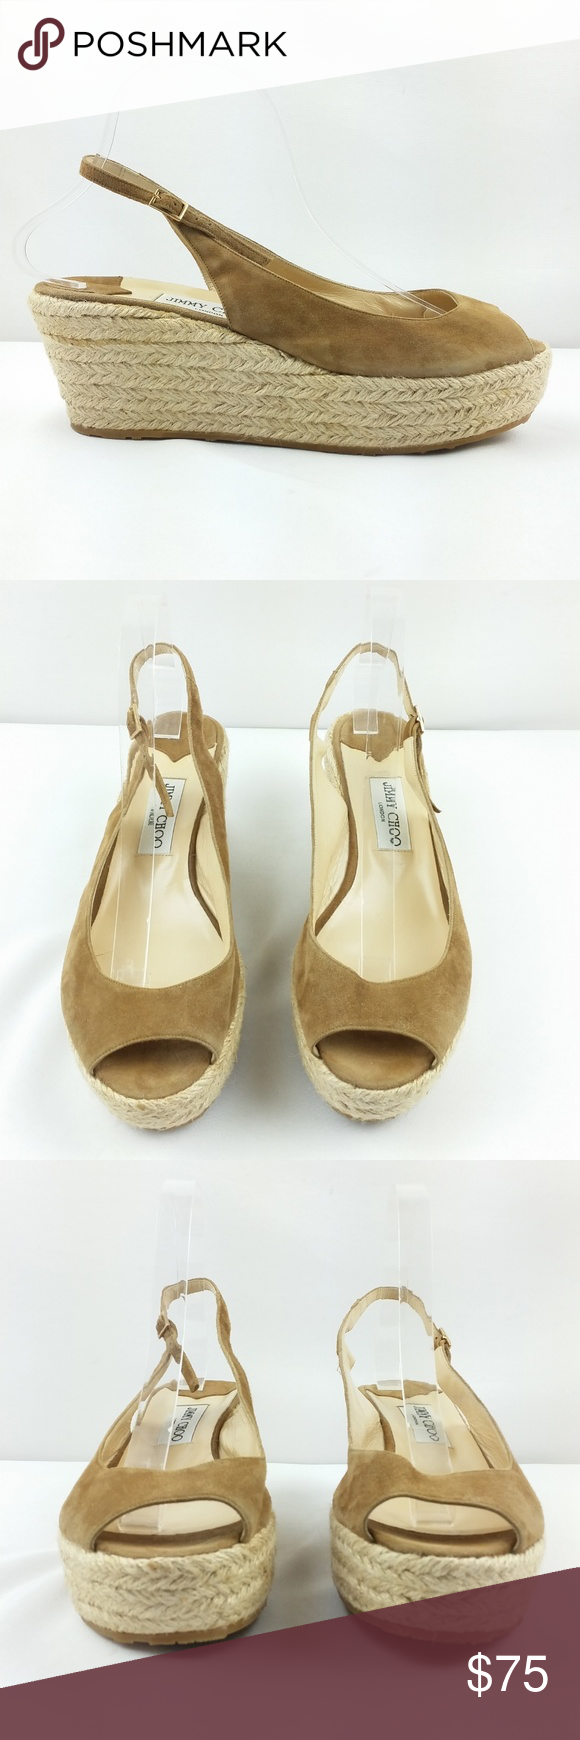 c01e1c79872 Jimmy Choo Wedge Sandal Size 41 Suede Espadrille Overall in good pre-owned  condition. Some signs of use. To prevent returns